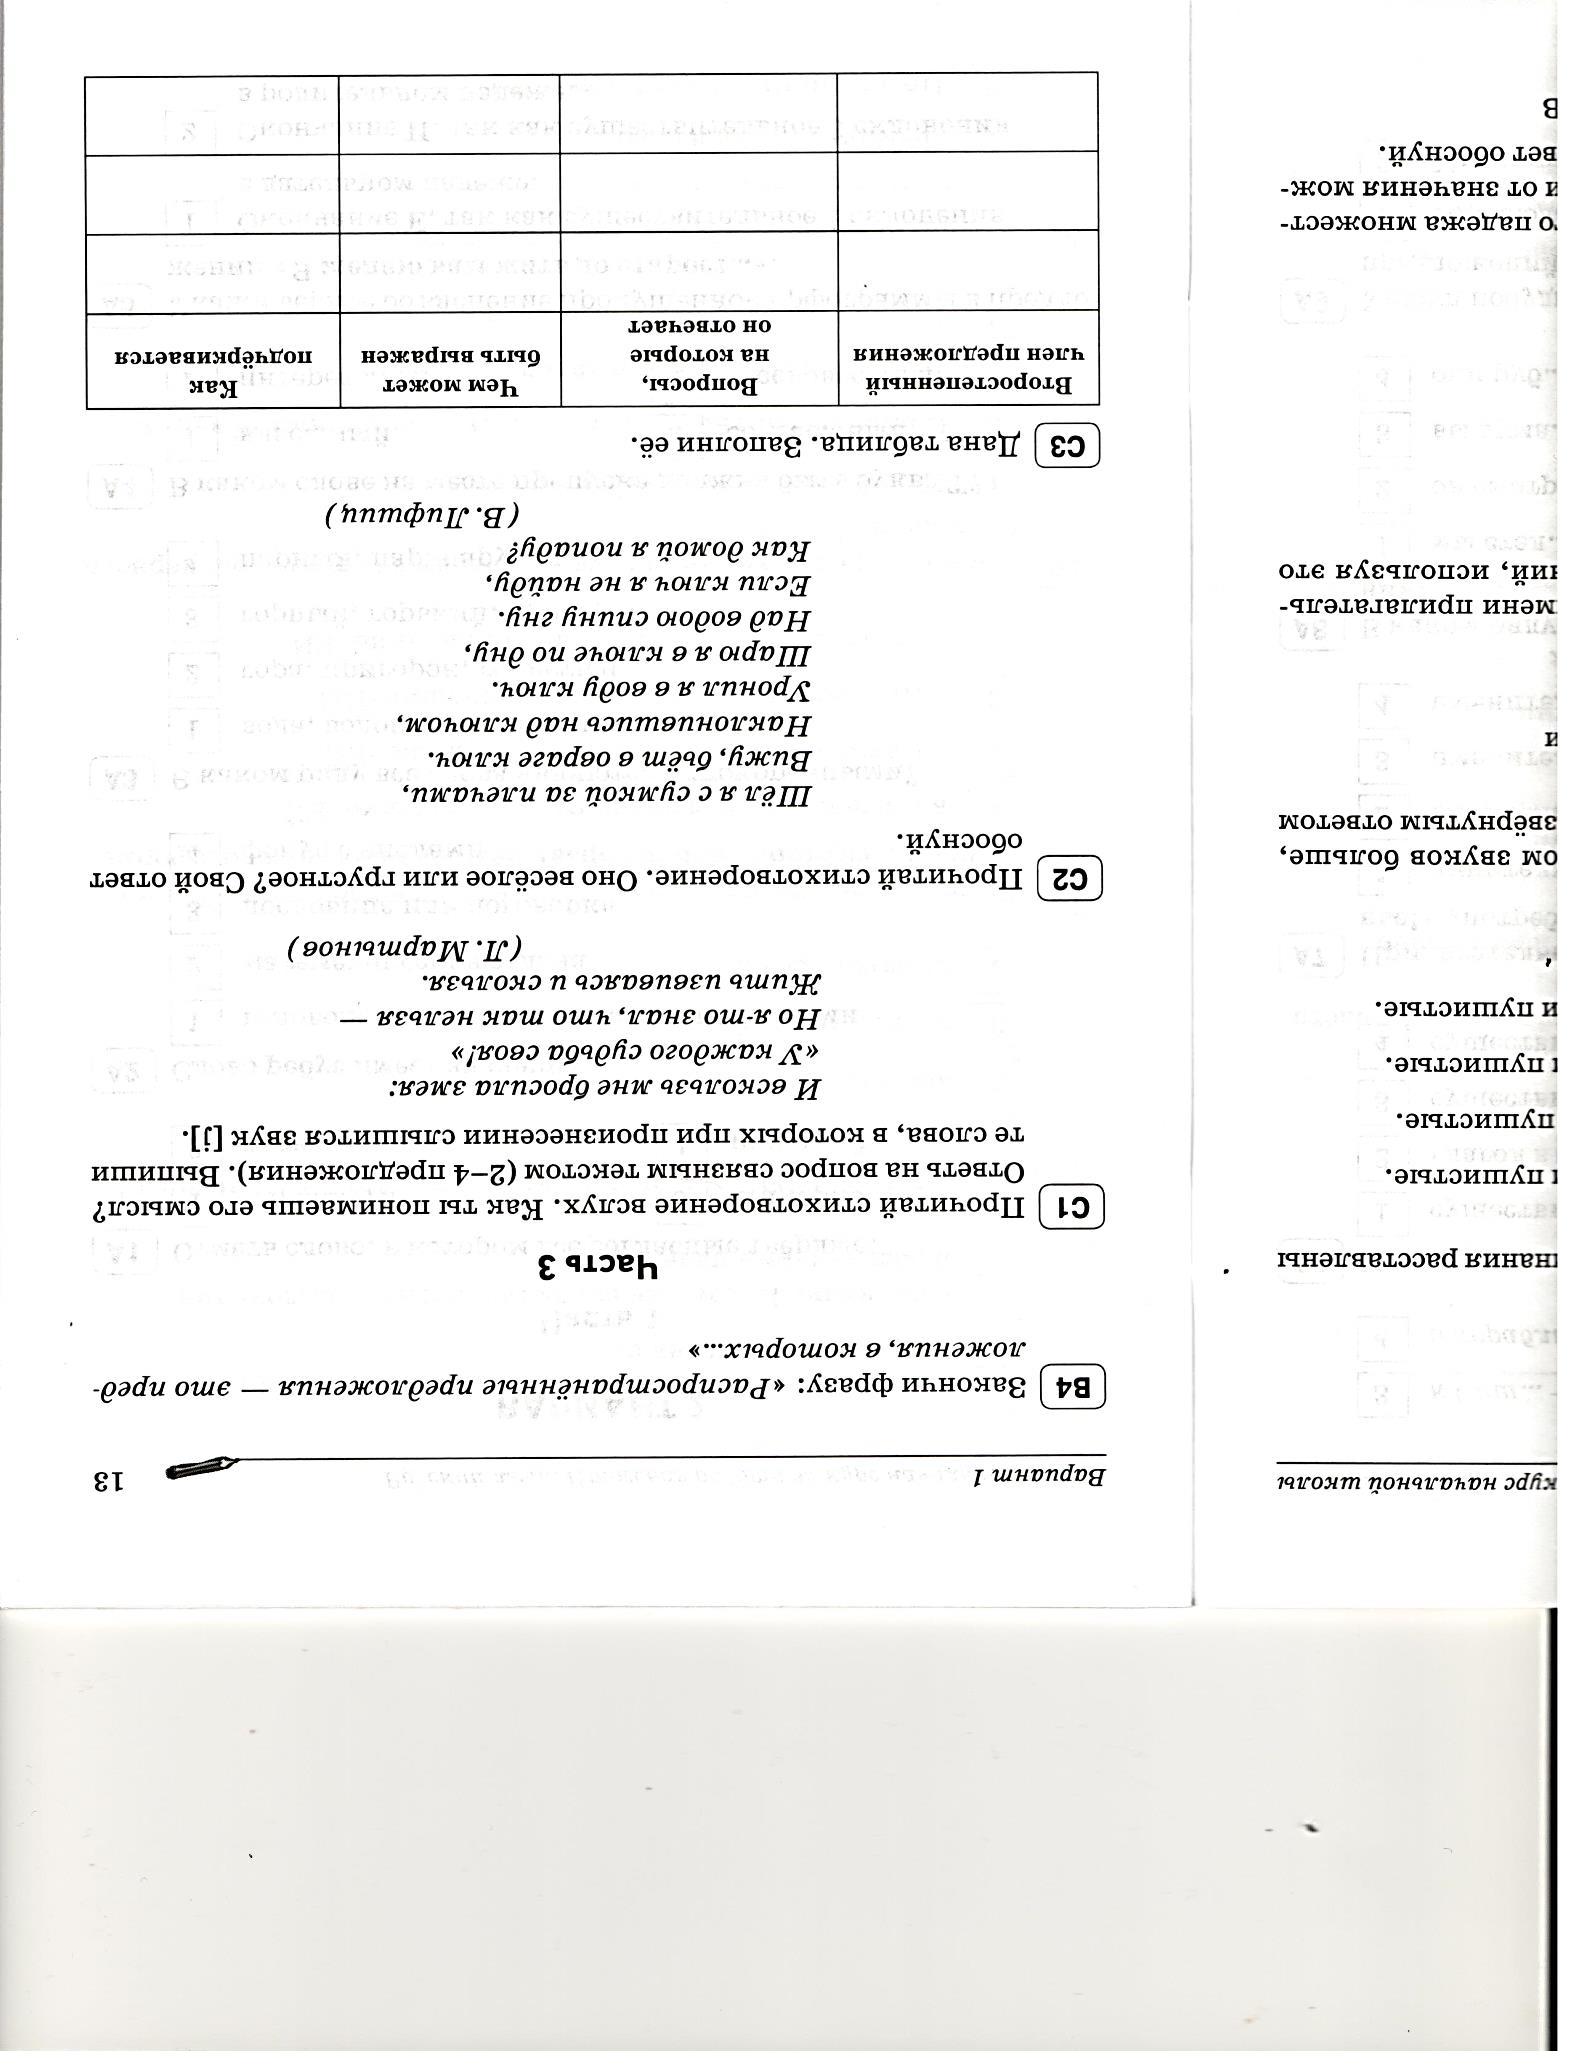 C:\Users\HP\Documents\Scanned Documents\Рисунок (3).jpg